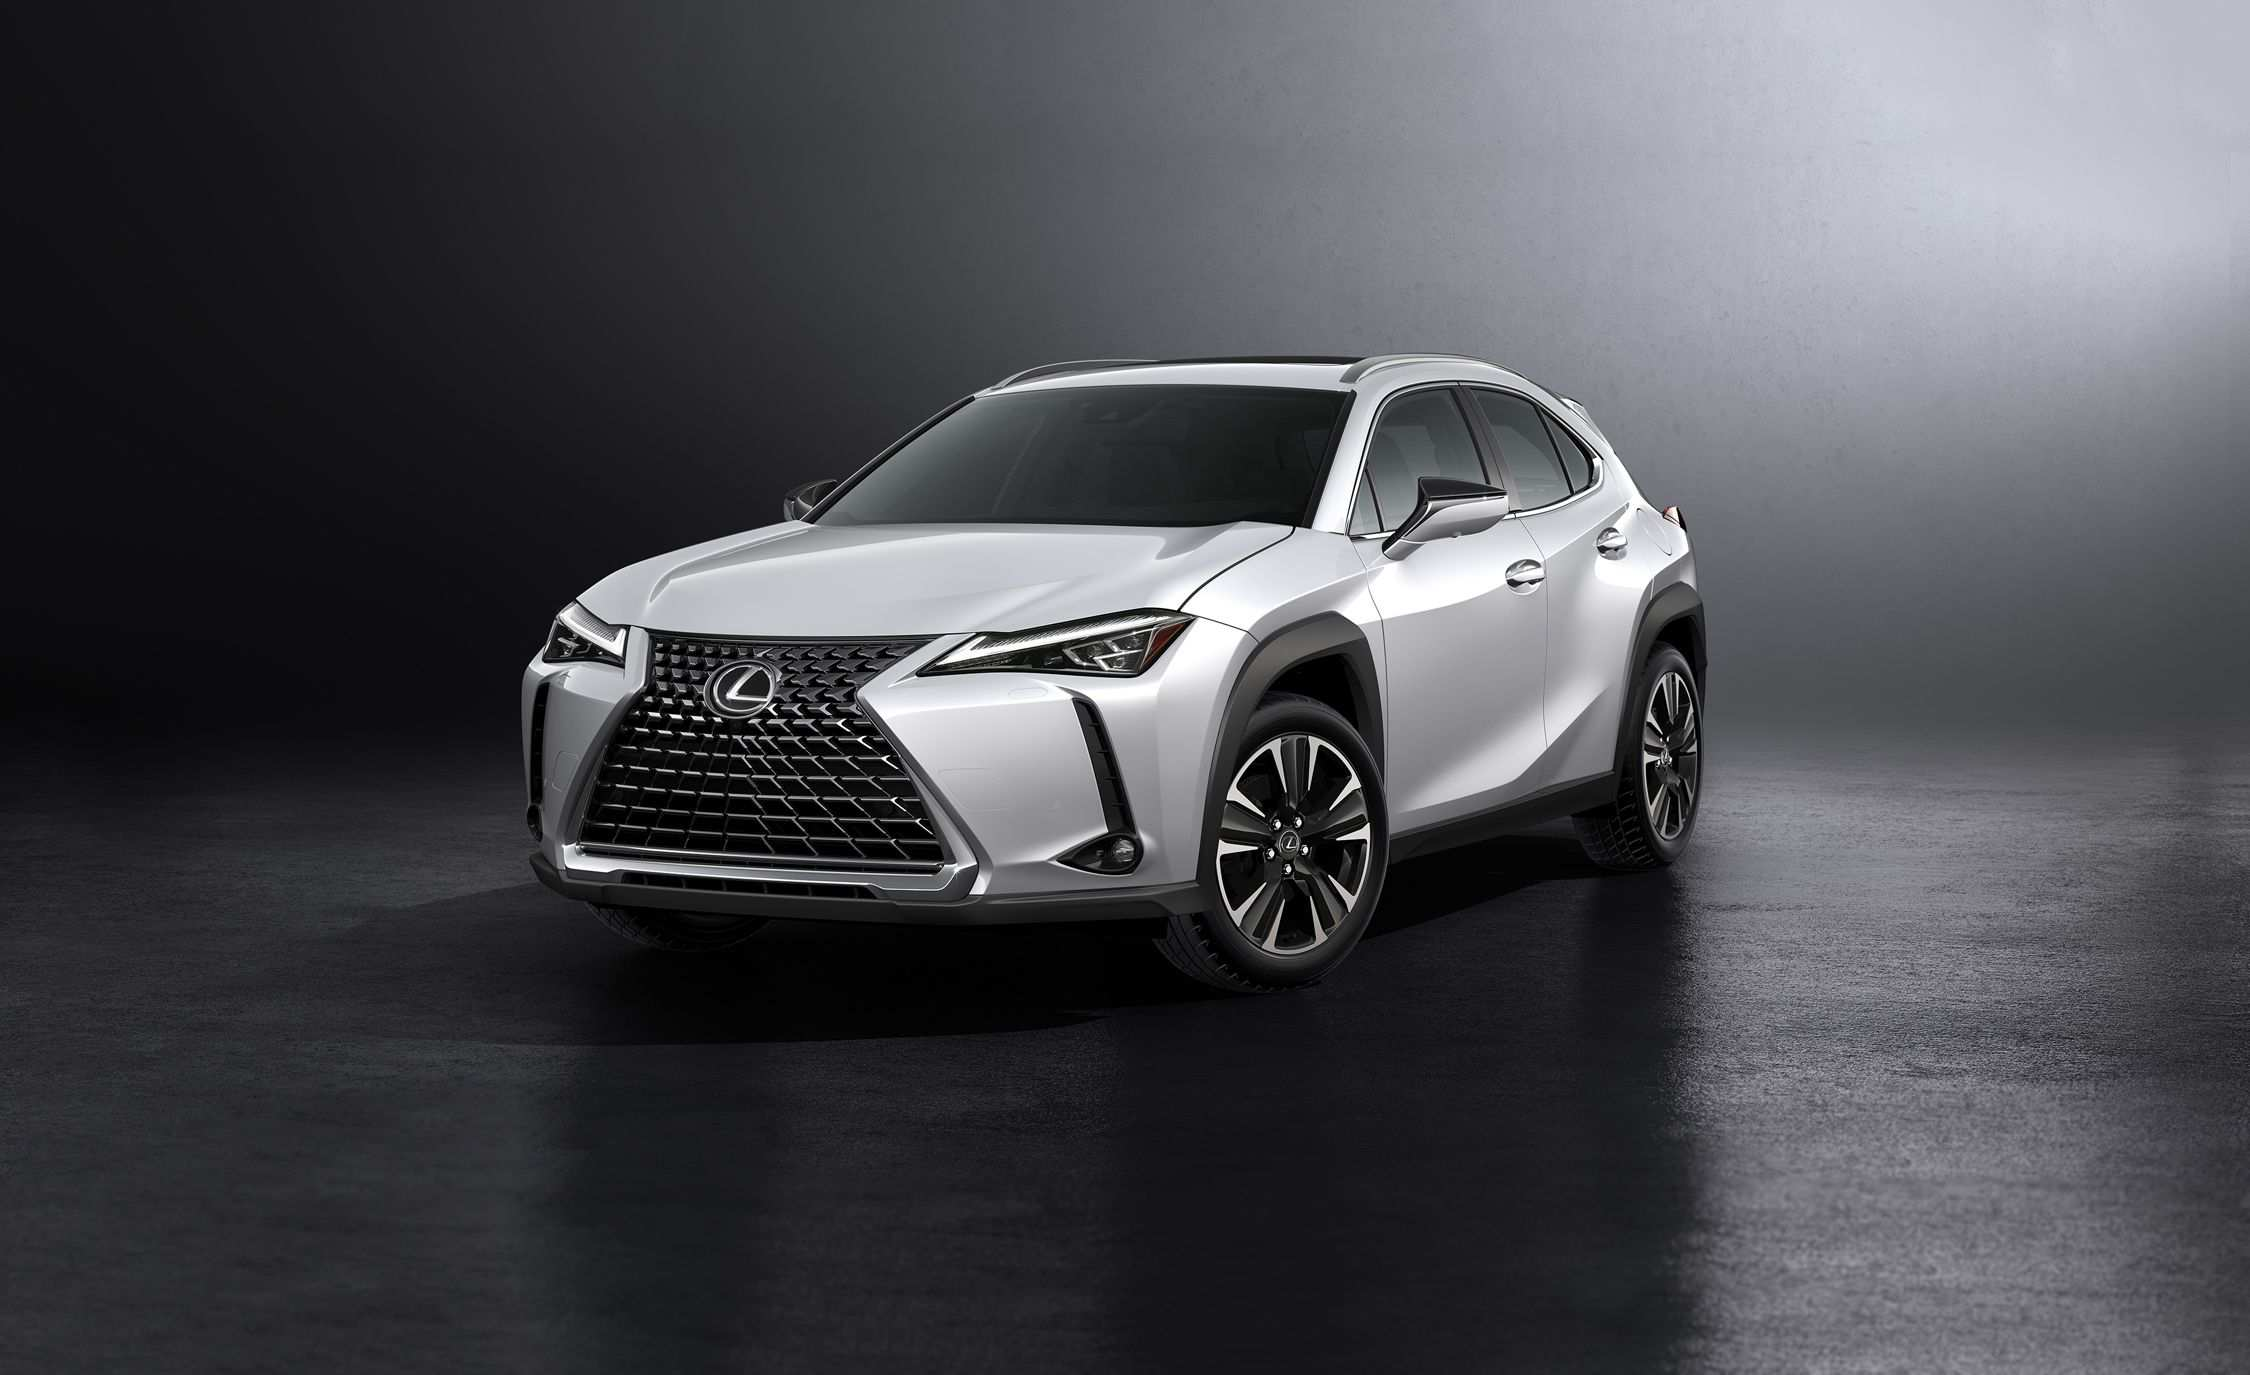 95 The Best 2019 Lexus Nx200 Price And Review